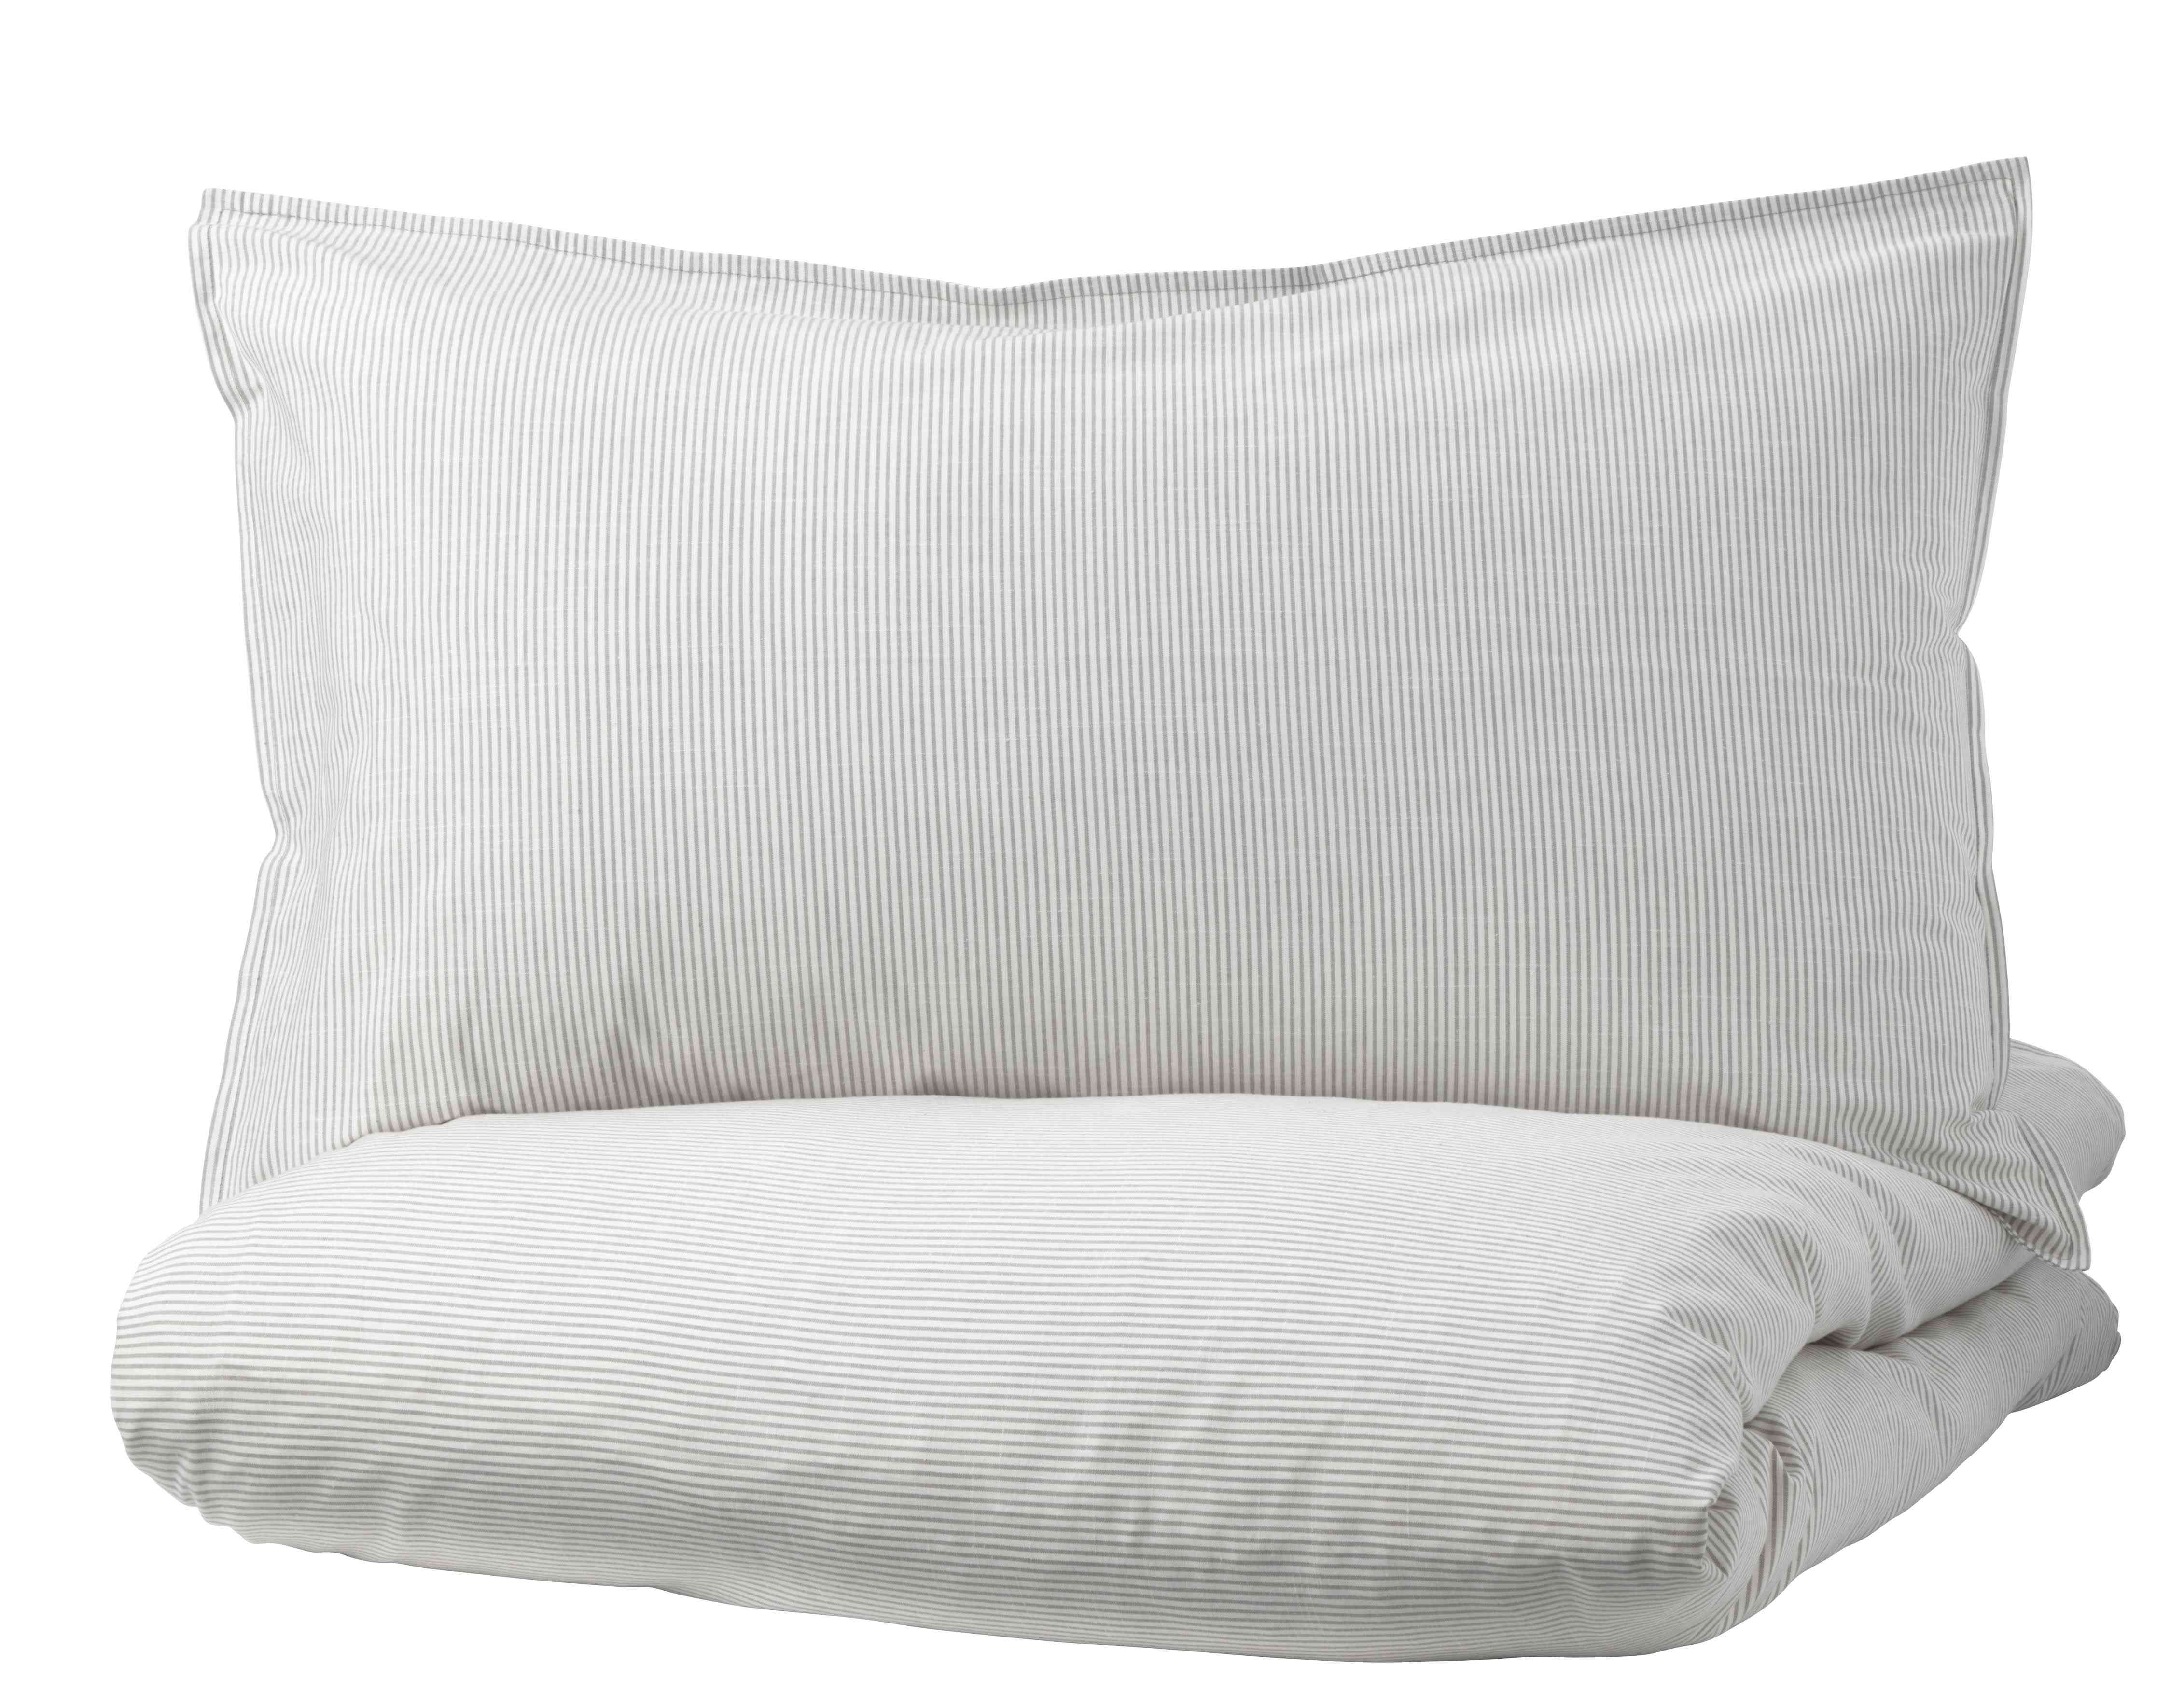 IKEA BERGPALM Duvet Cover and Pillowcase